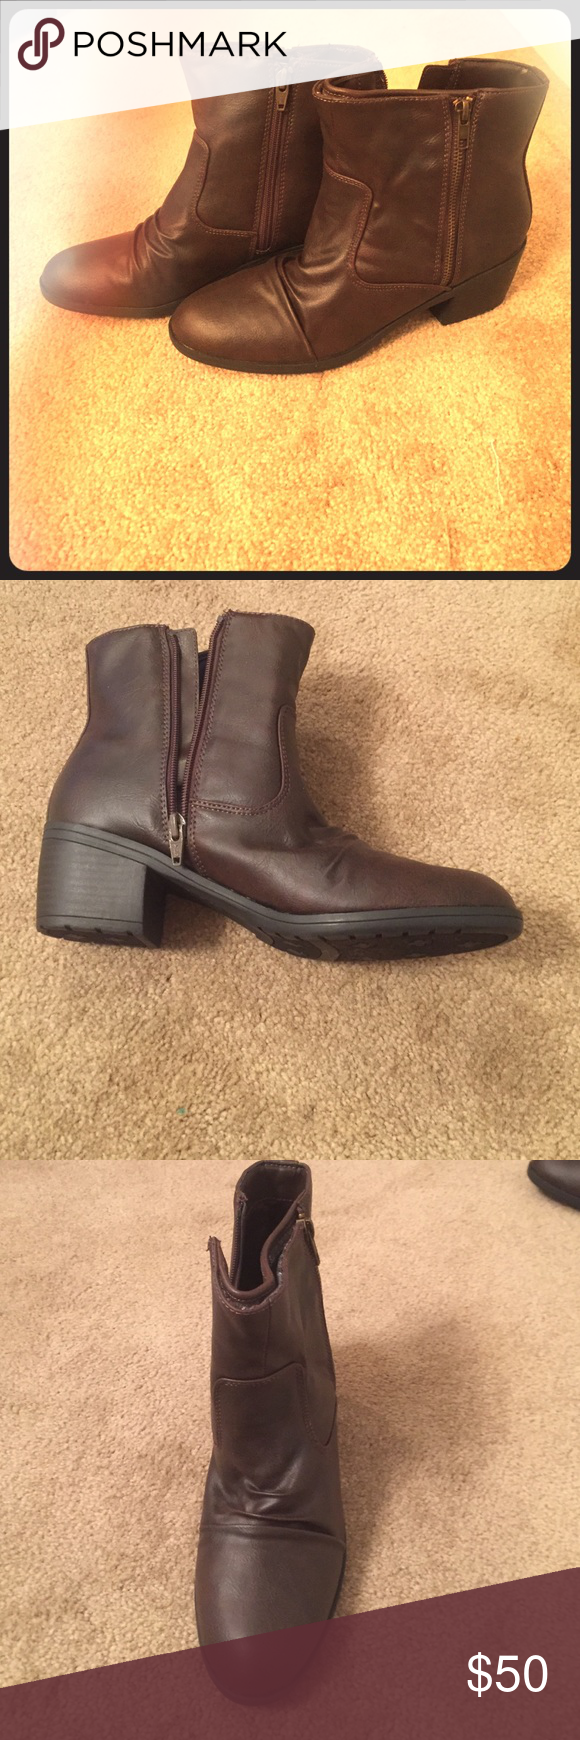 Life stride booties Dark brown w/ 1 & 1/2 inch heel Life Stride Shoes Ankle Boots & Booties